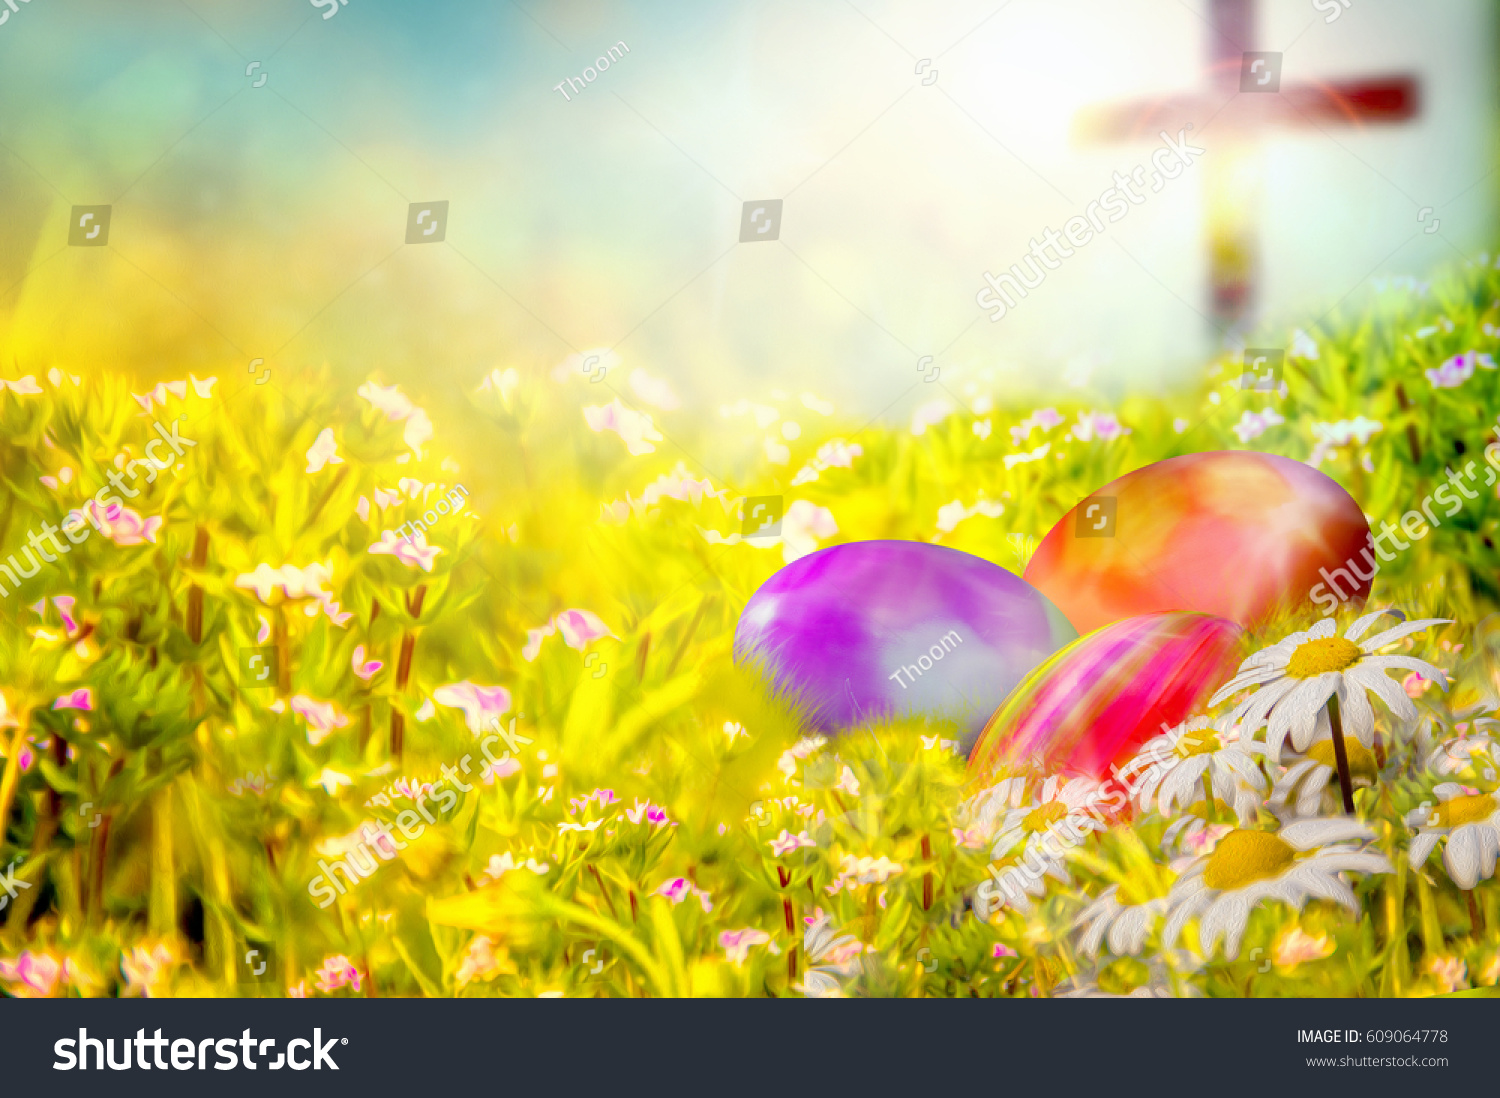 Easter Background With Colorful Painted Eggs In The Grass Spring Flowers And A